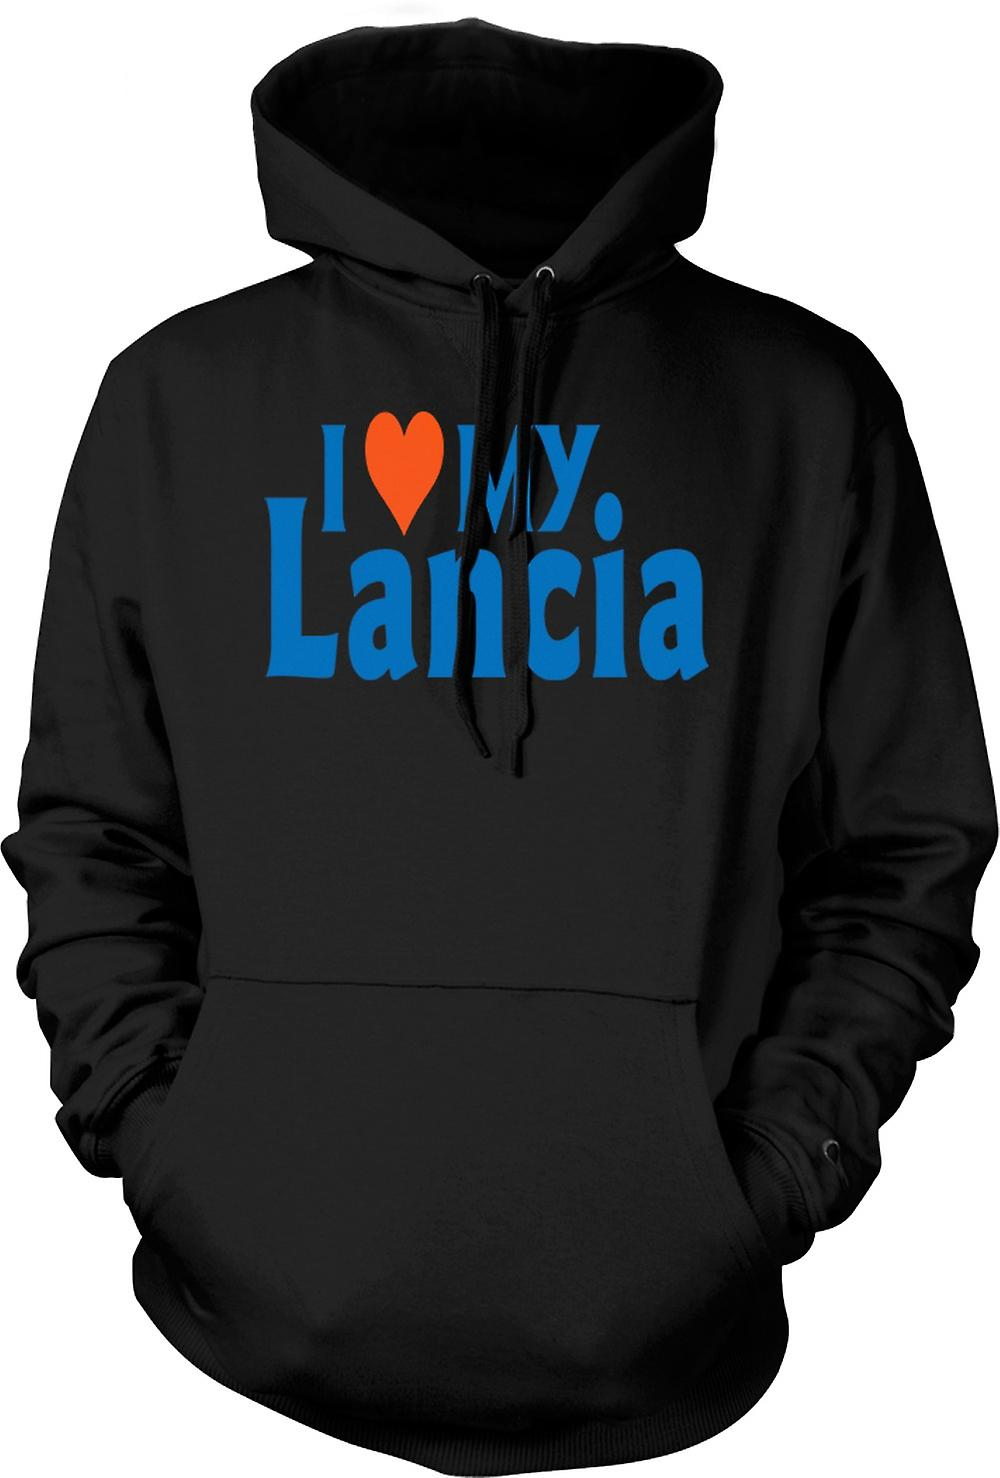 Mens Hoodie - I Love My Lancia - Car Enthusiast